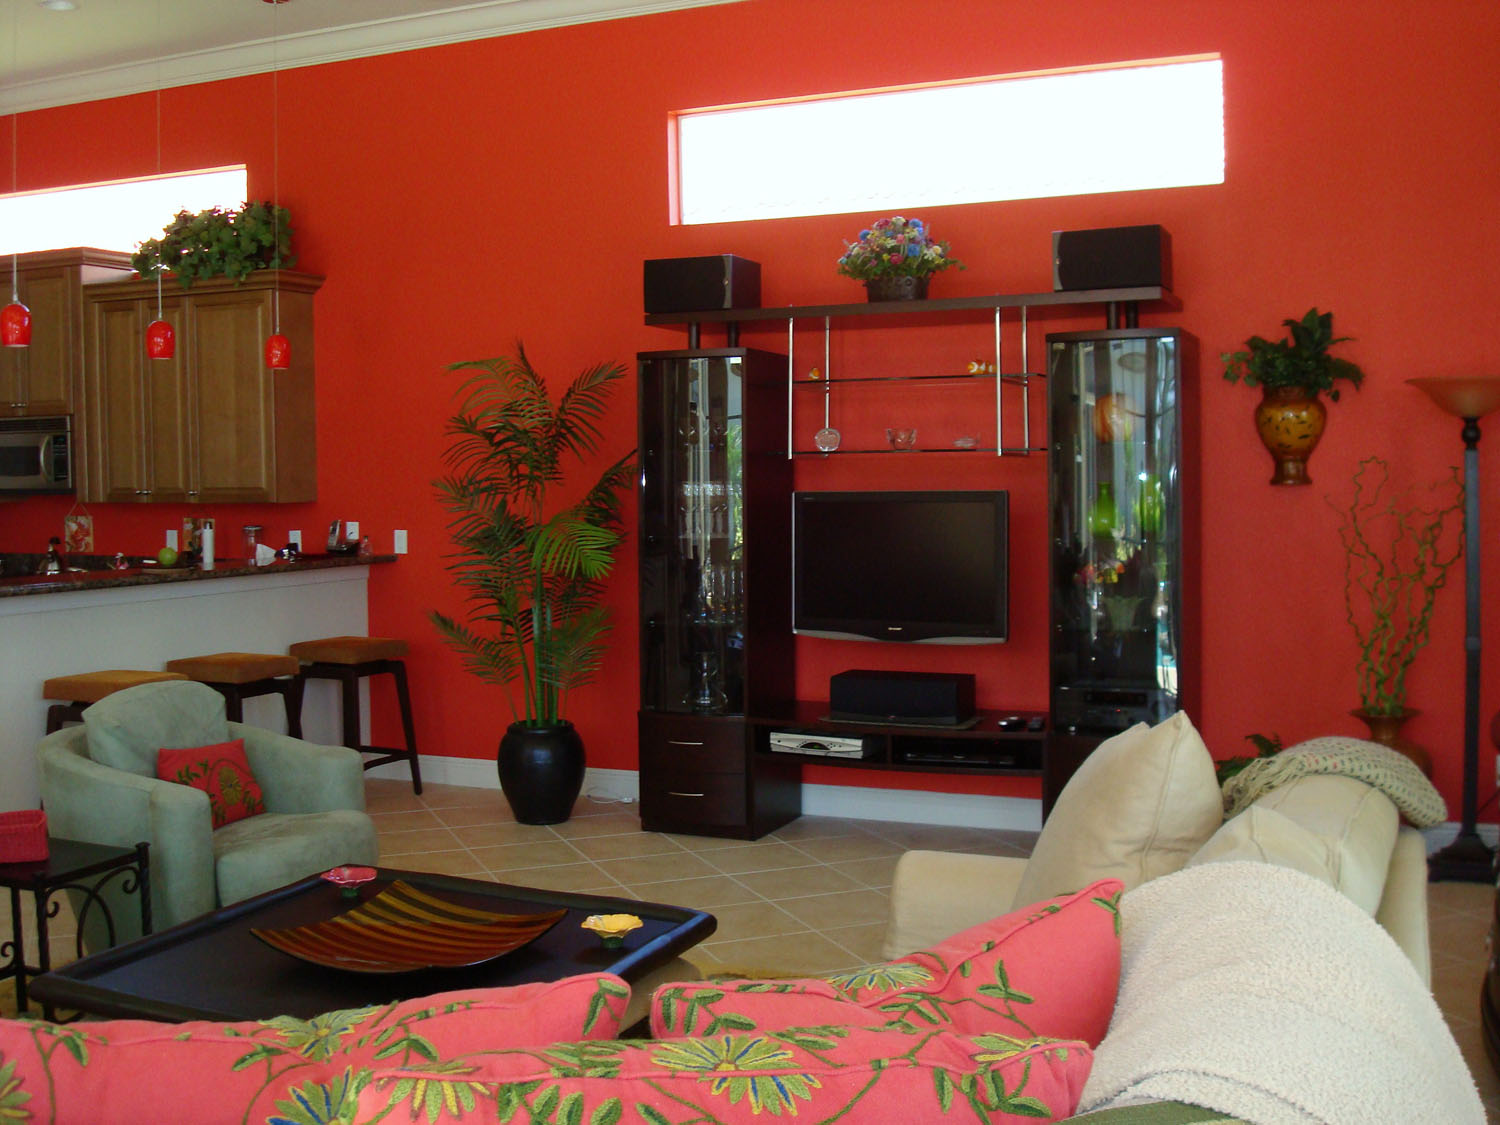 2-Pop-of-color-home-makeover-project-after-1500px.jpg